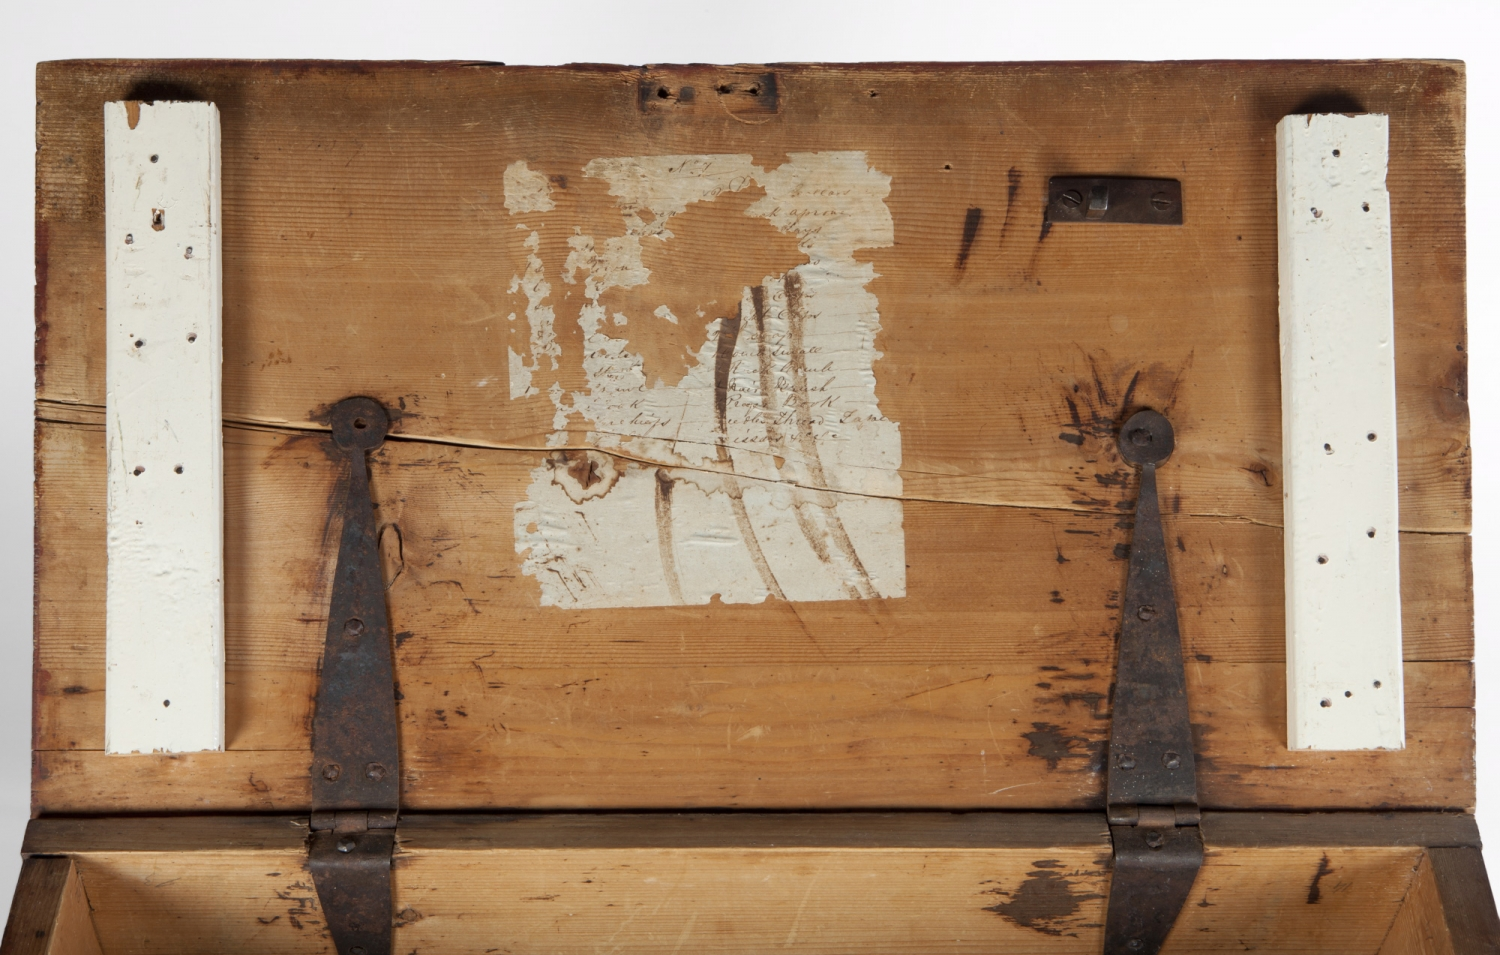 Closeup of inside lid of box showing hinges and patch where something has been scraped off.